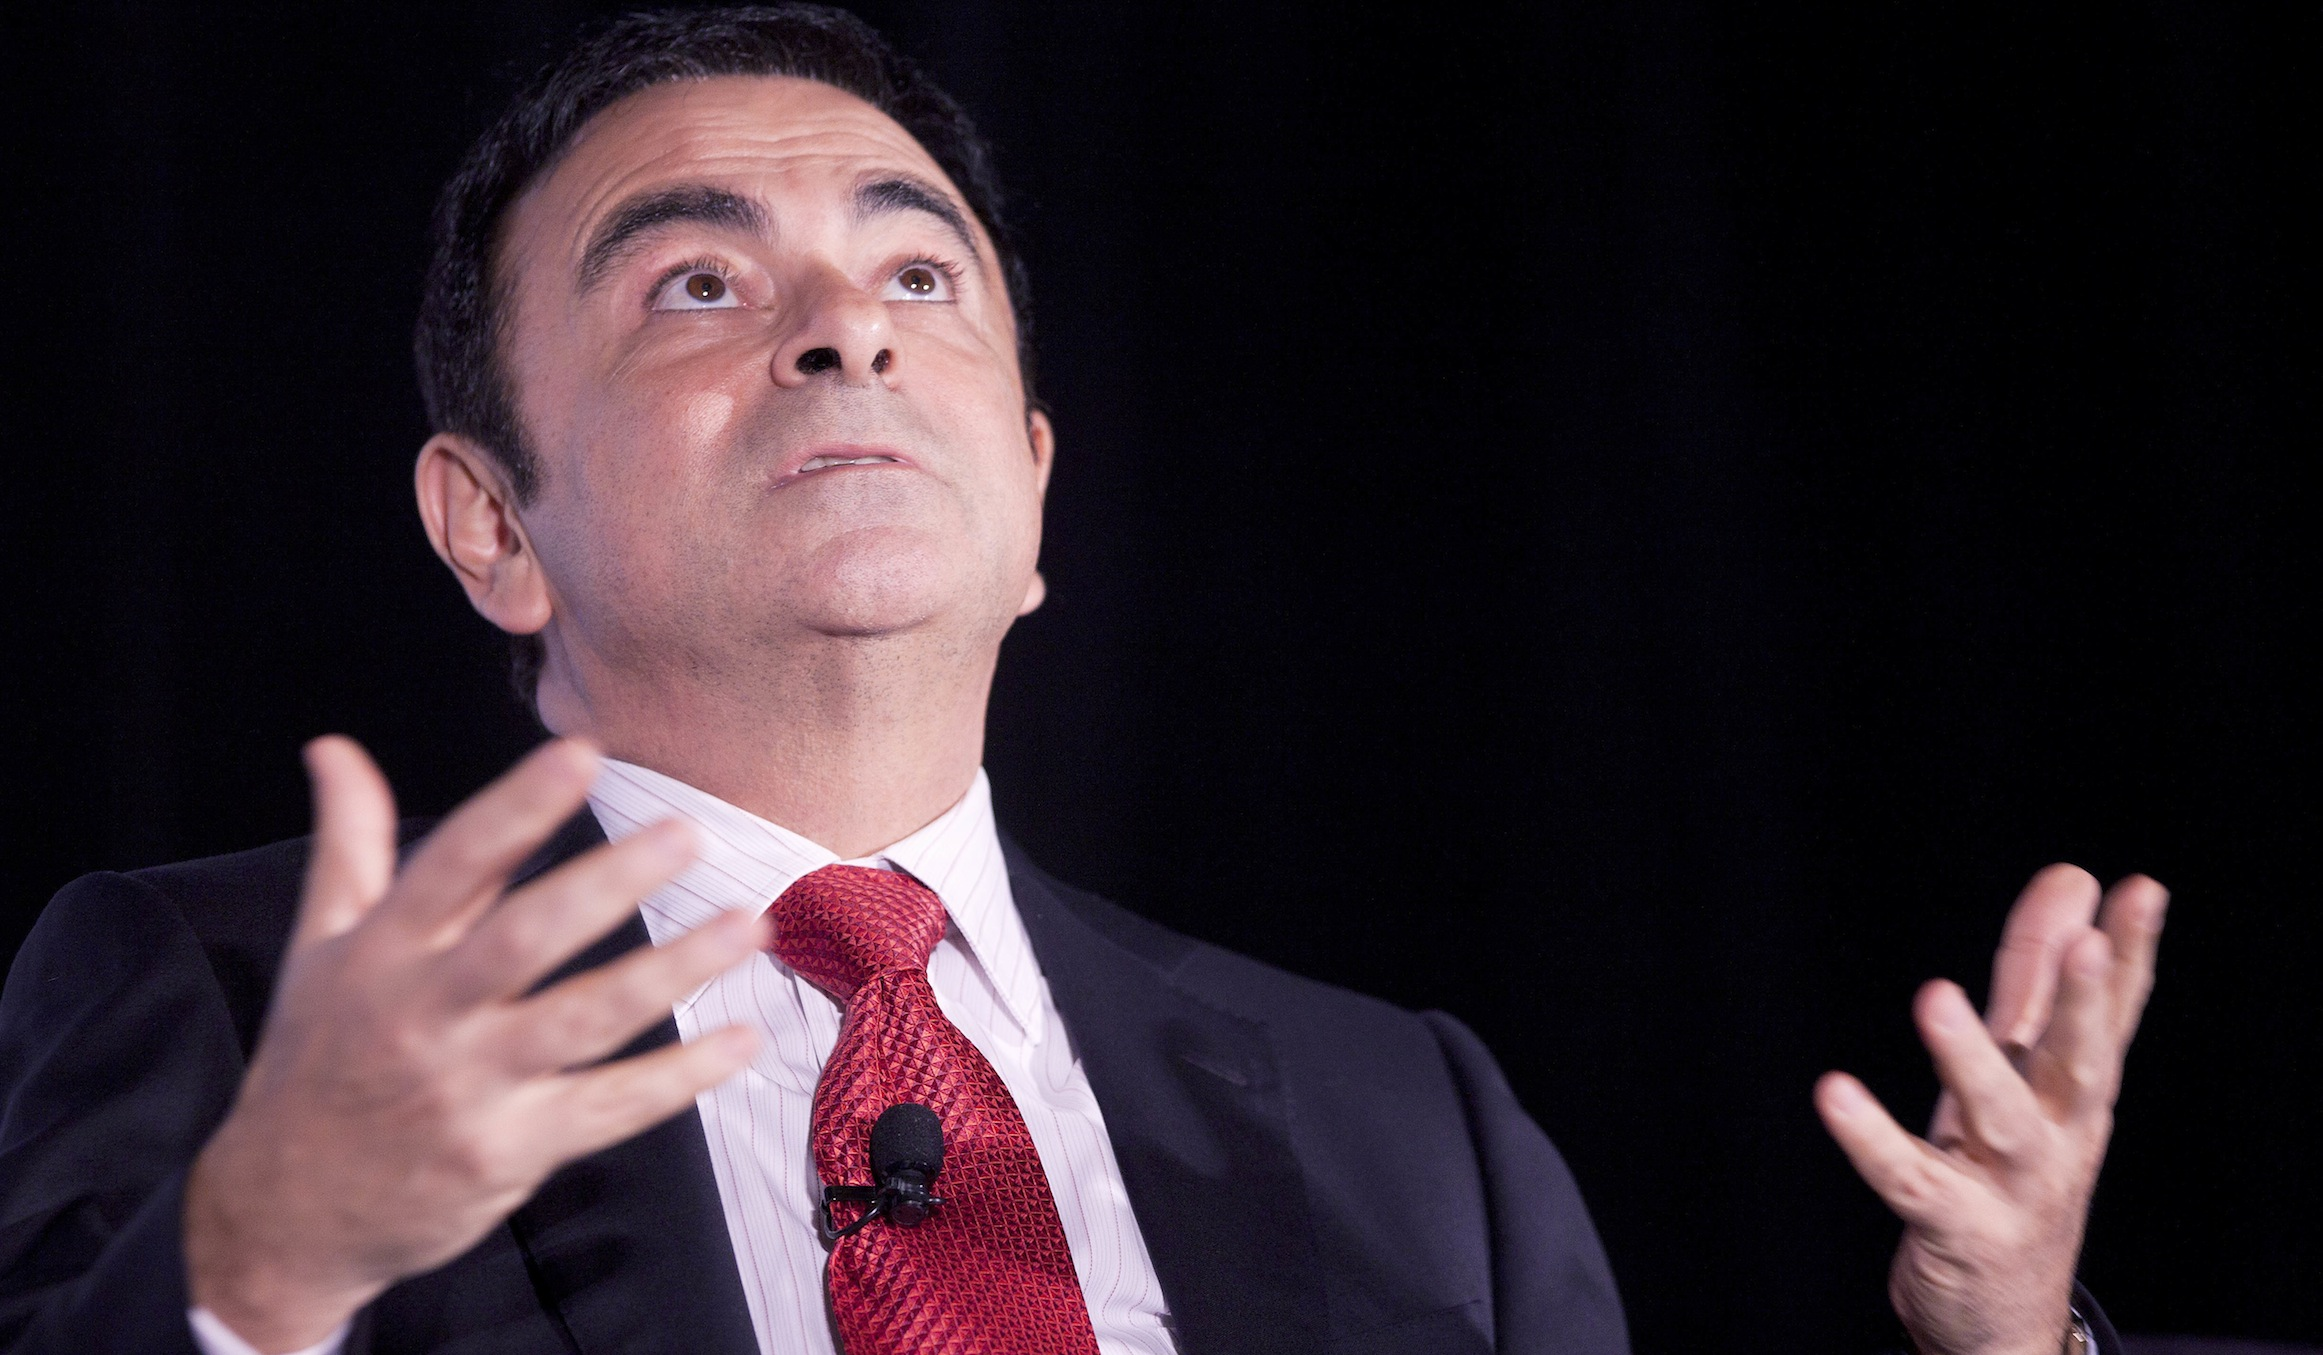 Carlos Ghosn, Chairman and CEO Nissan and Renault,